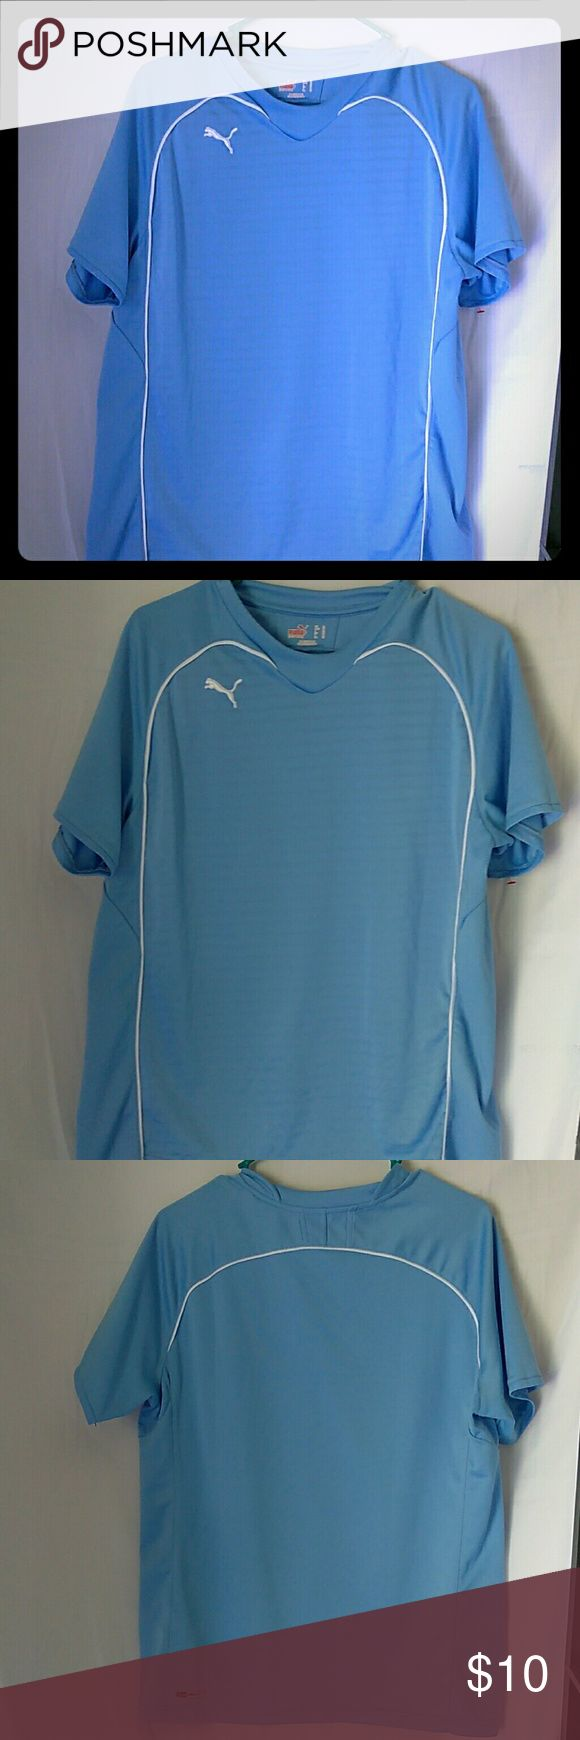 Puma Xl light blue work out shirt Puma XL work out shirt blue with either accent used but still in good condition. Puma Shirts Tees - Short Sleeve